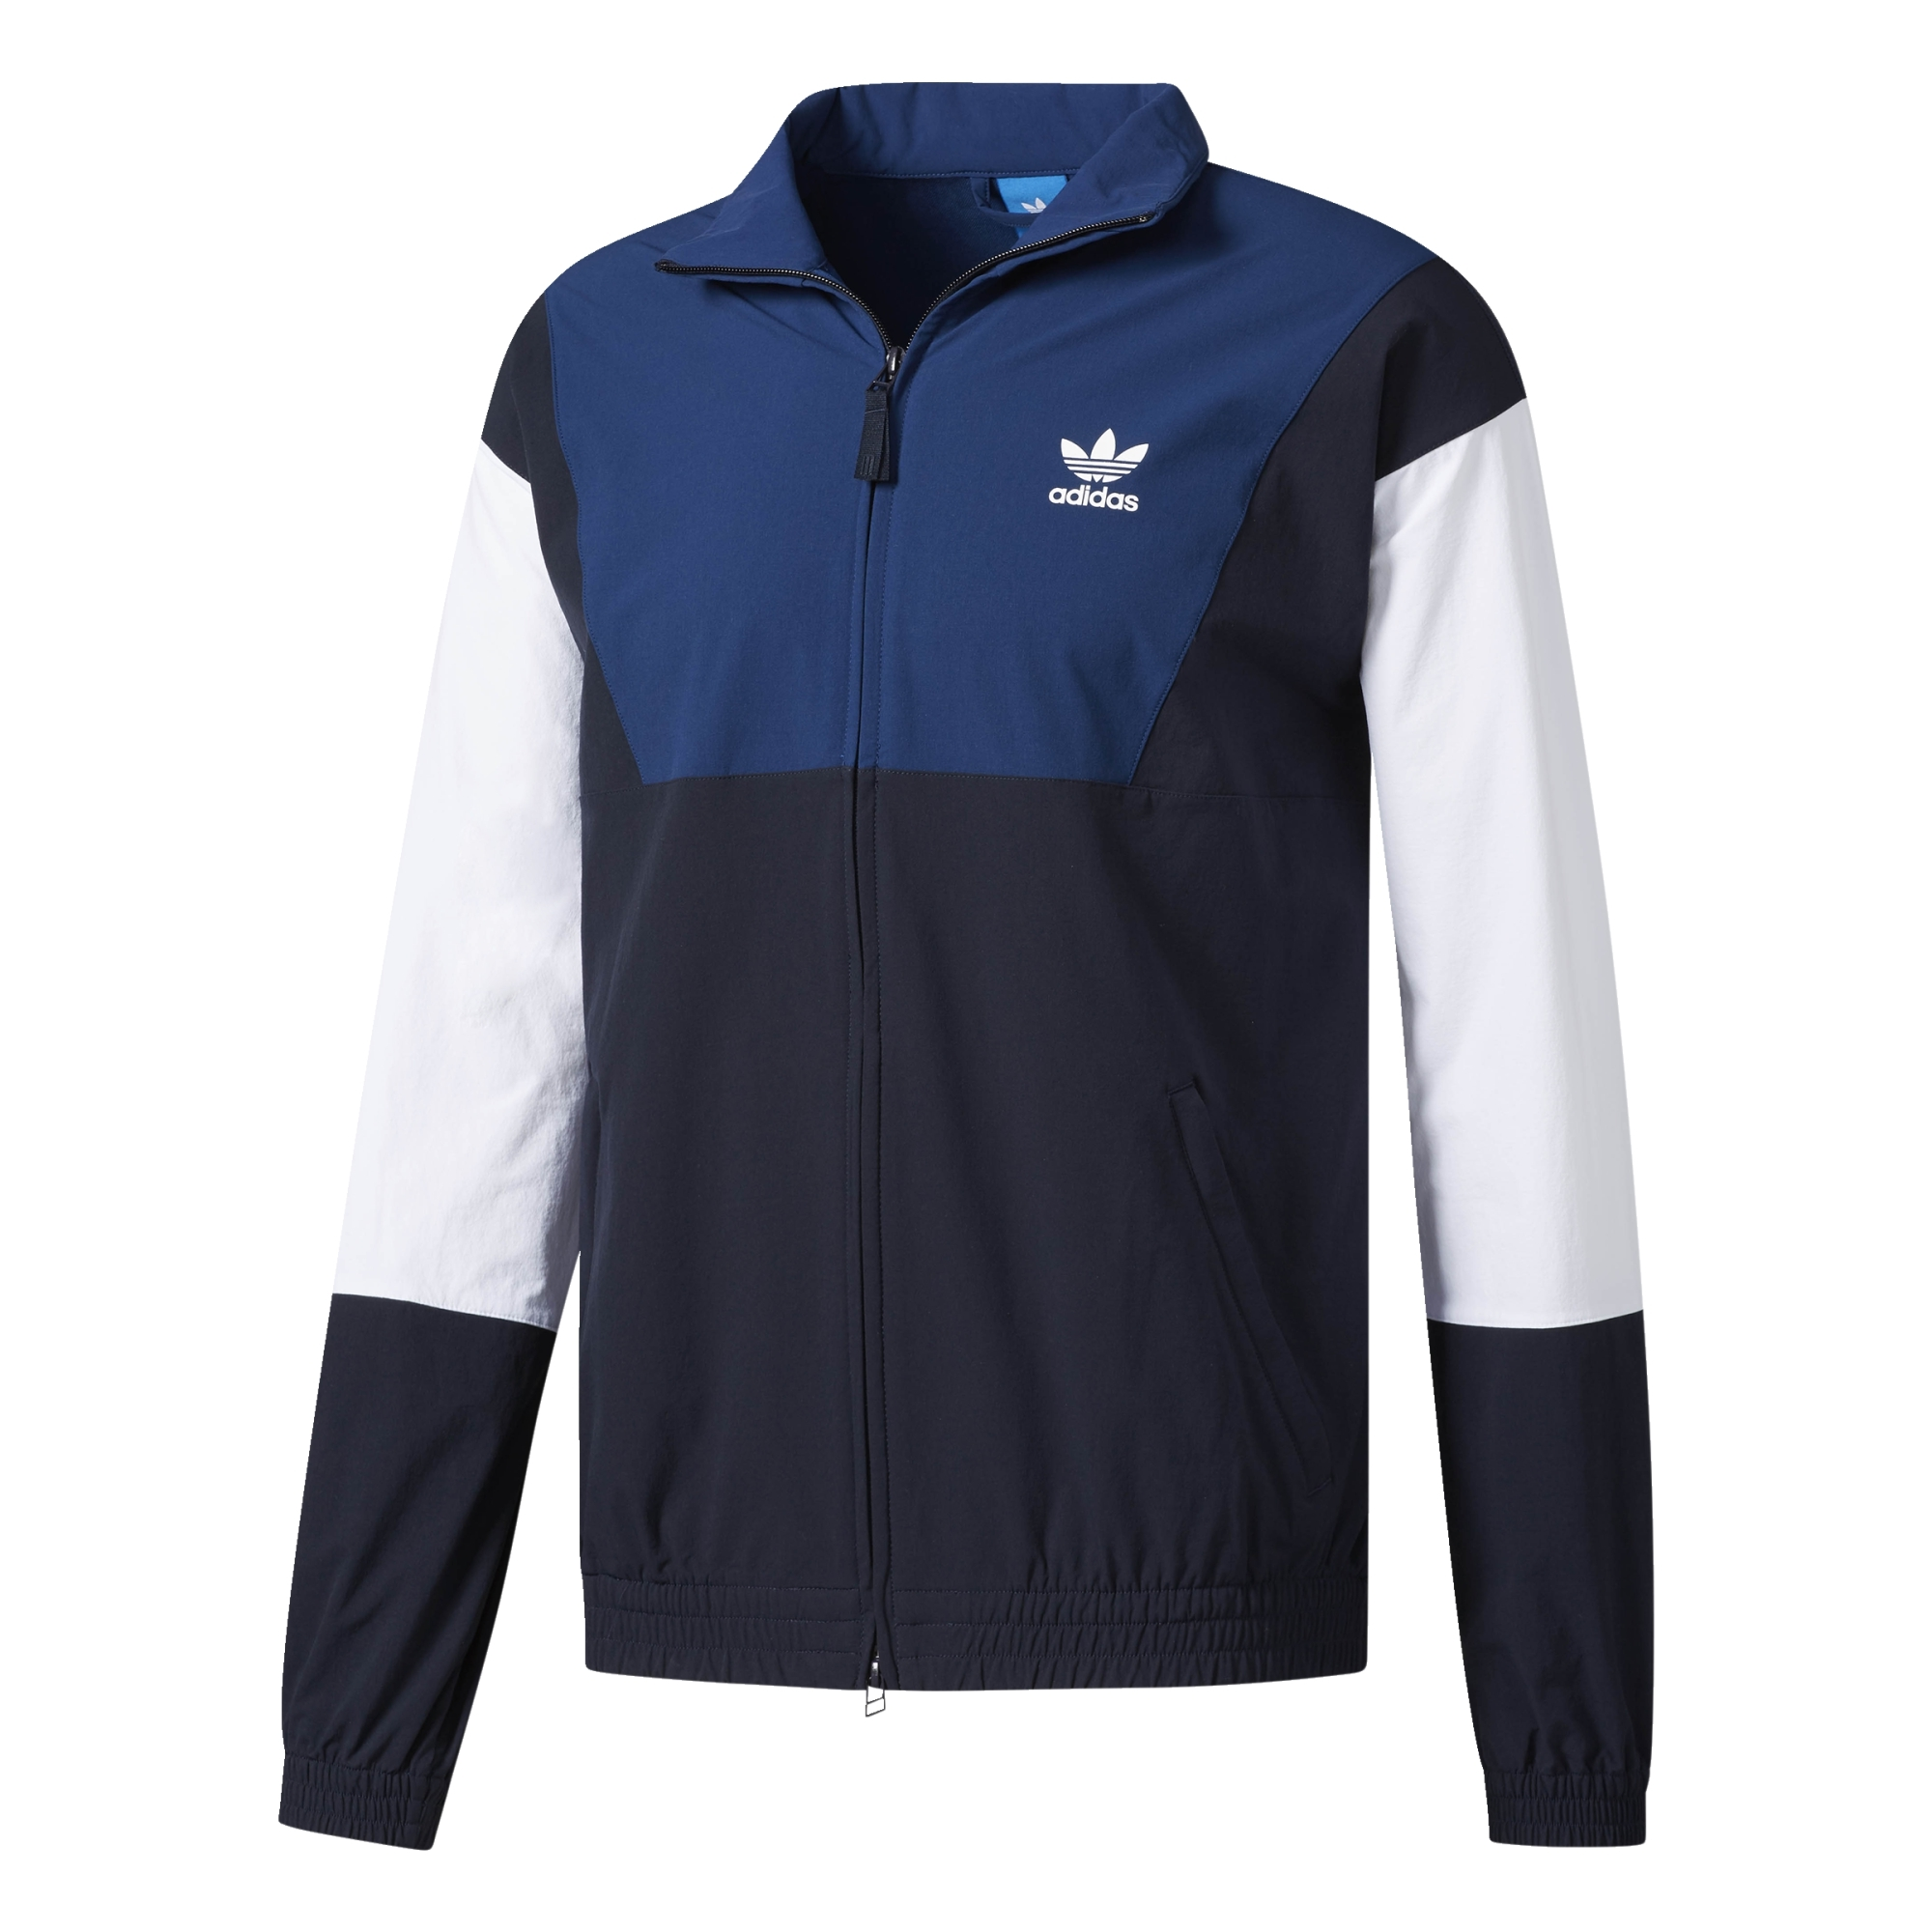 Adidas Originals Oridecon Blocked Wind Jacket (legend ink) 21d2a1dfc7155